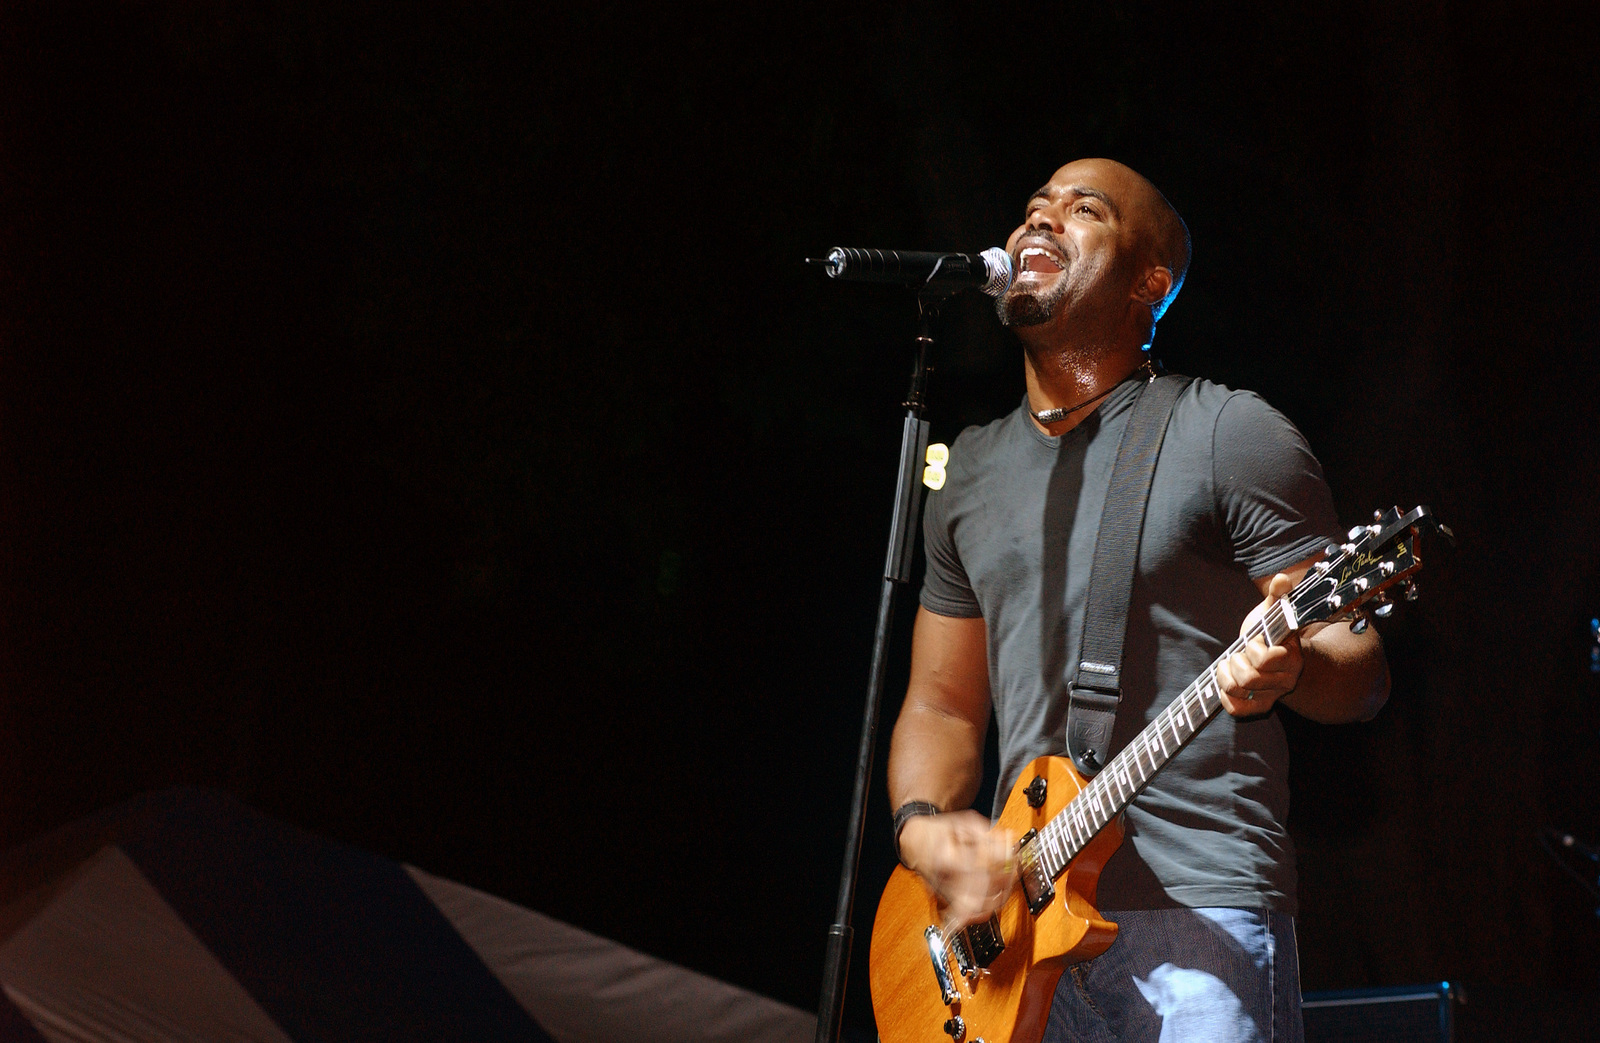 Hootie and the Blowfish lead singer Darius Rucker performs one of his many hit songs along with his band, during a free concert sponsored by the Air Force Reserve Command (AFRCOM) at Hickam Air Force Base (AFB), Hawaii (HI)